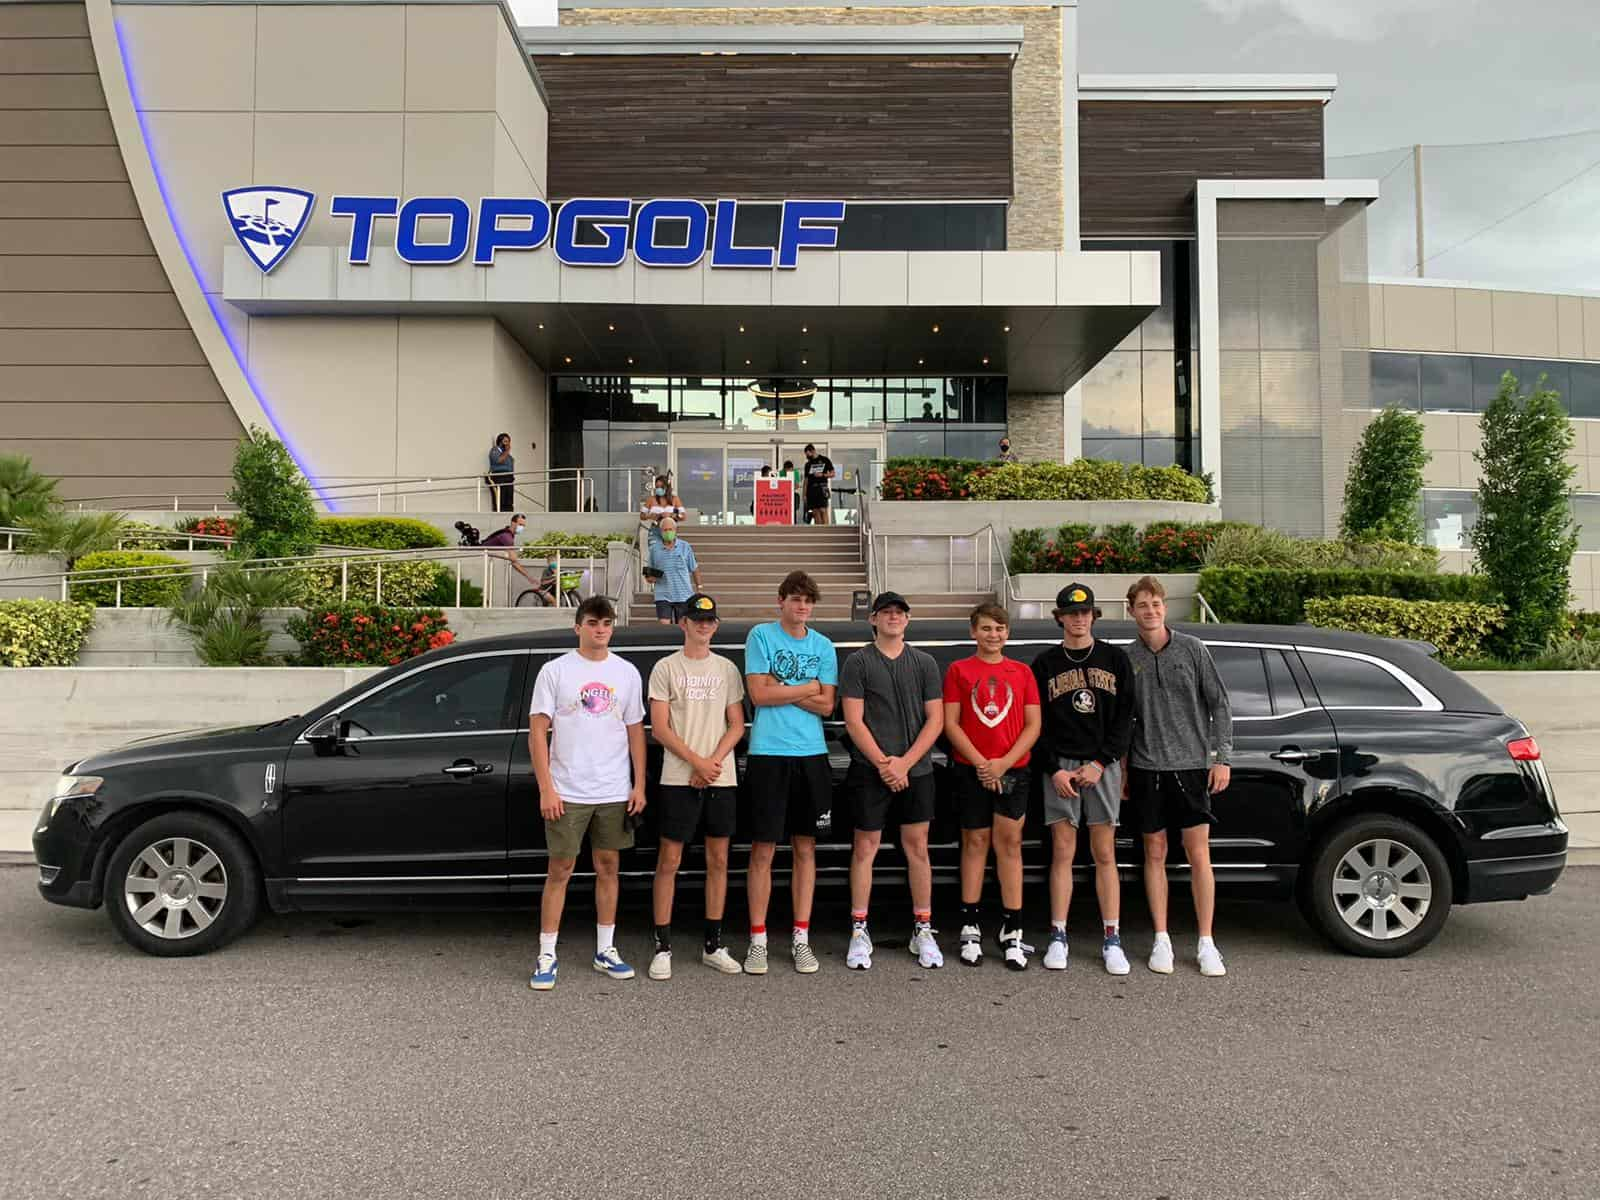 Boys Outing at Top Golf in a Limo